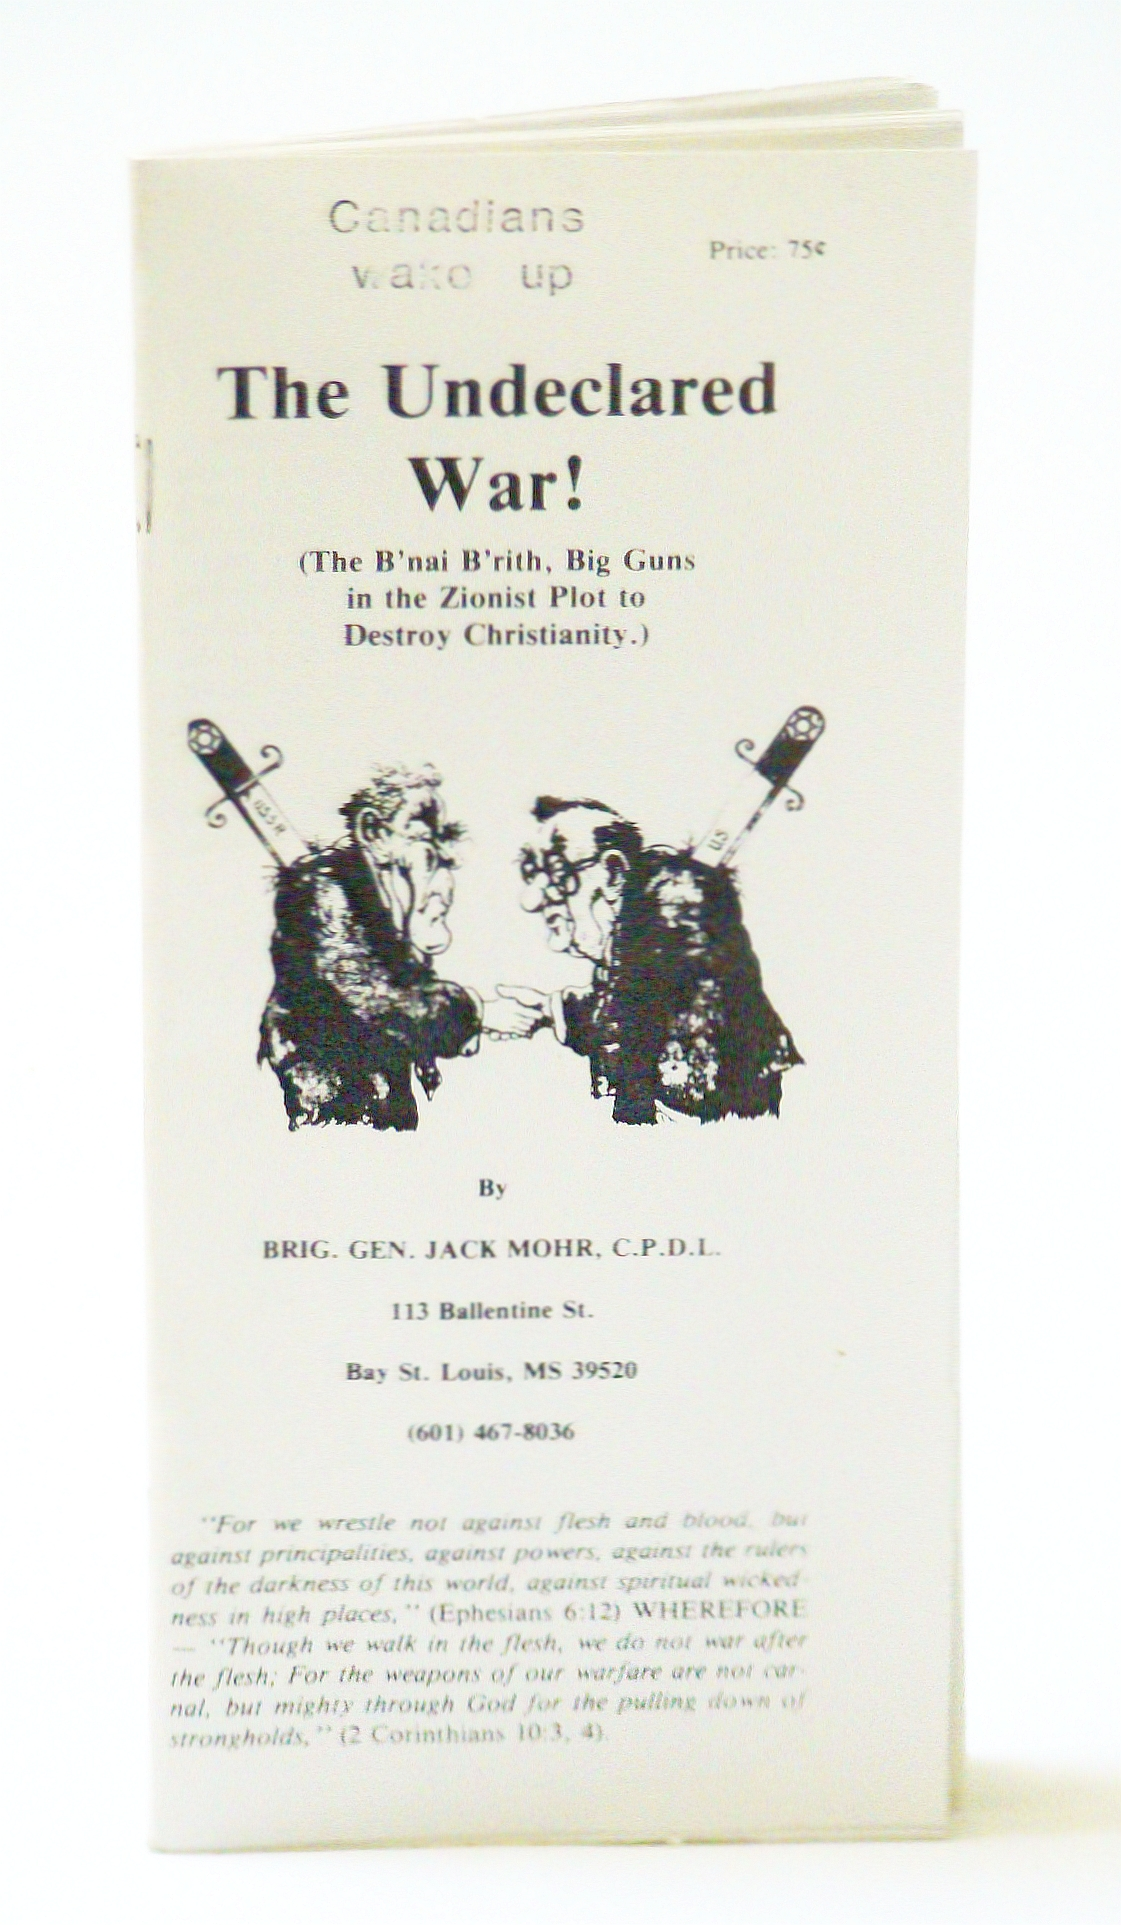 Image for The Undeclared War! (The B'nai B'rith, Big Guns in the Zionist Plot to Destroy Christianity)